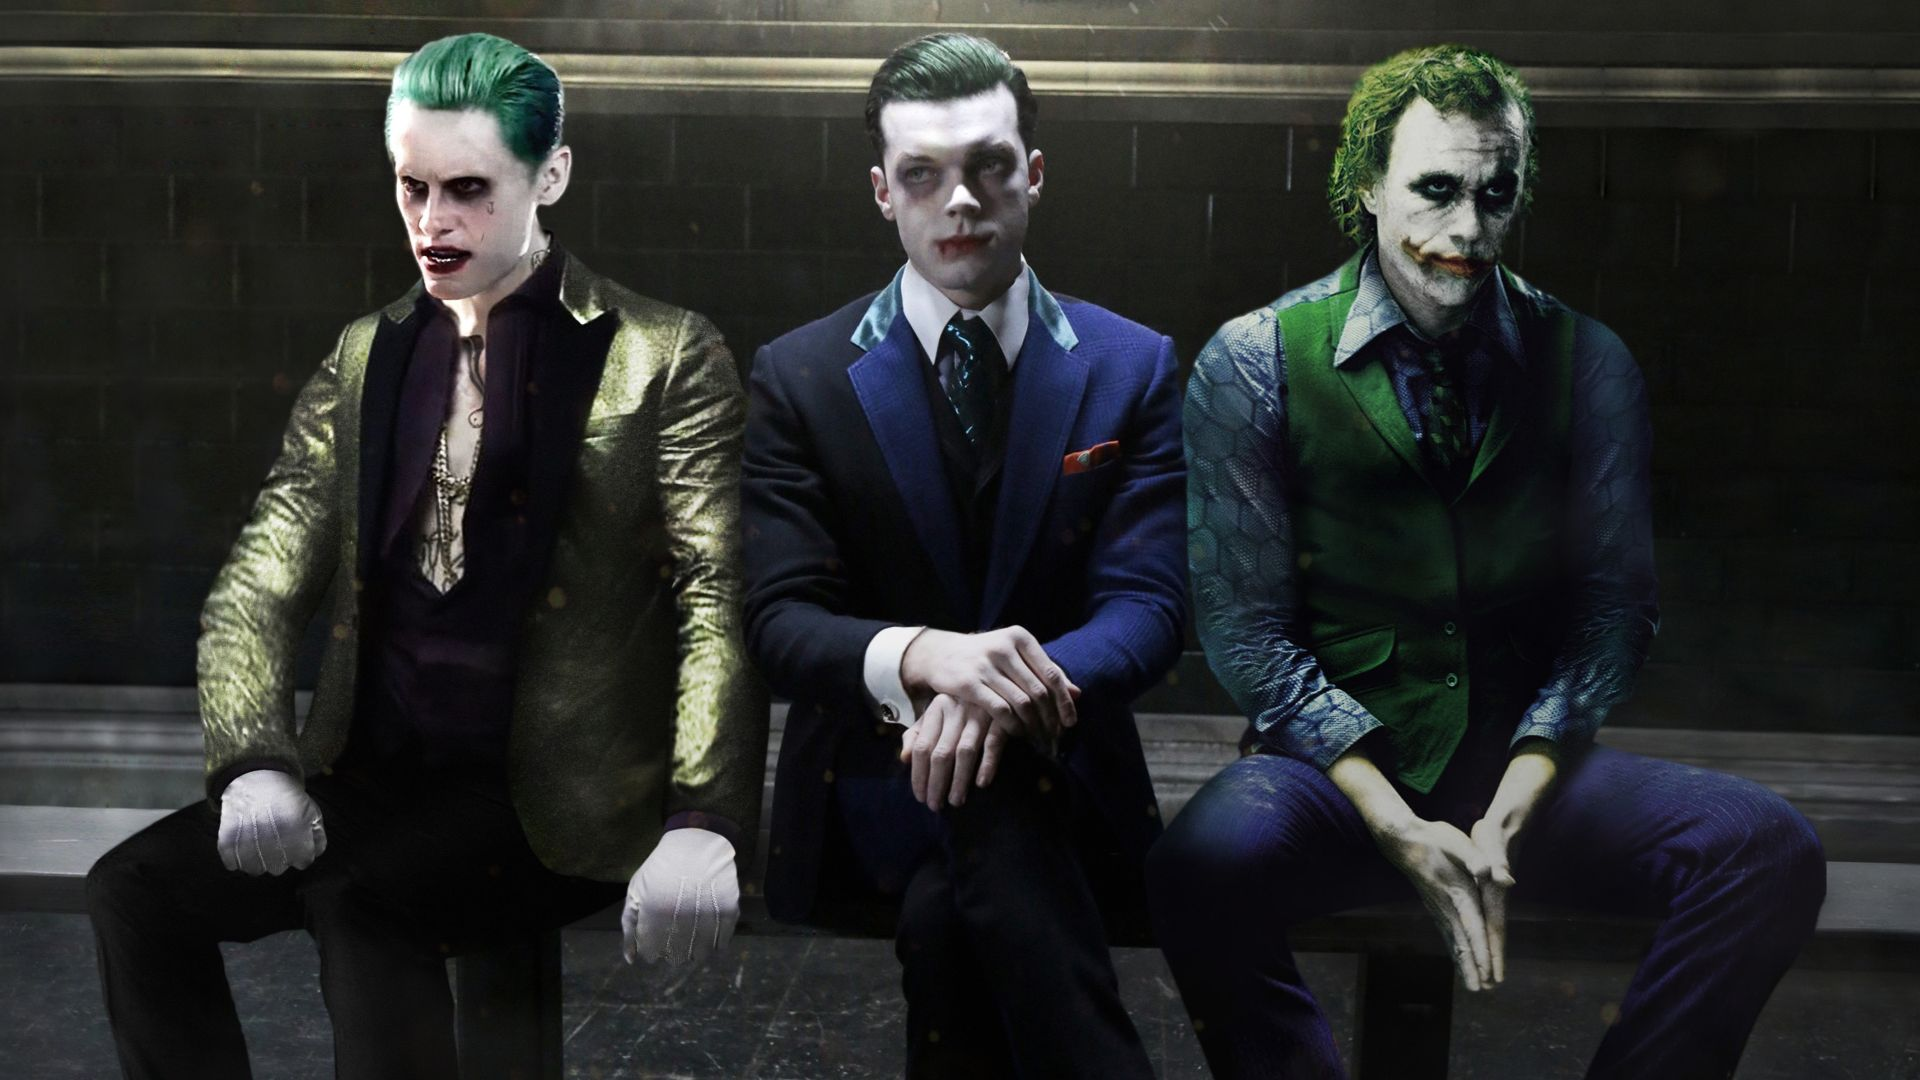 Suicide Squad Joker, Wallpaper and Background